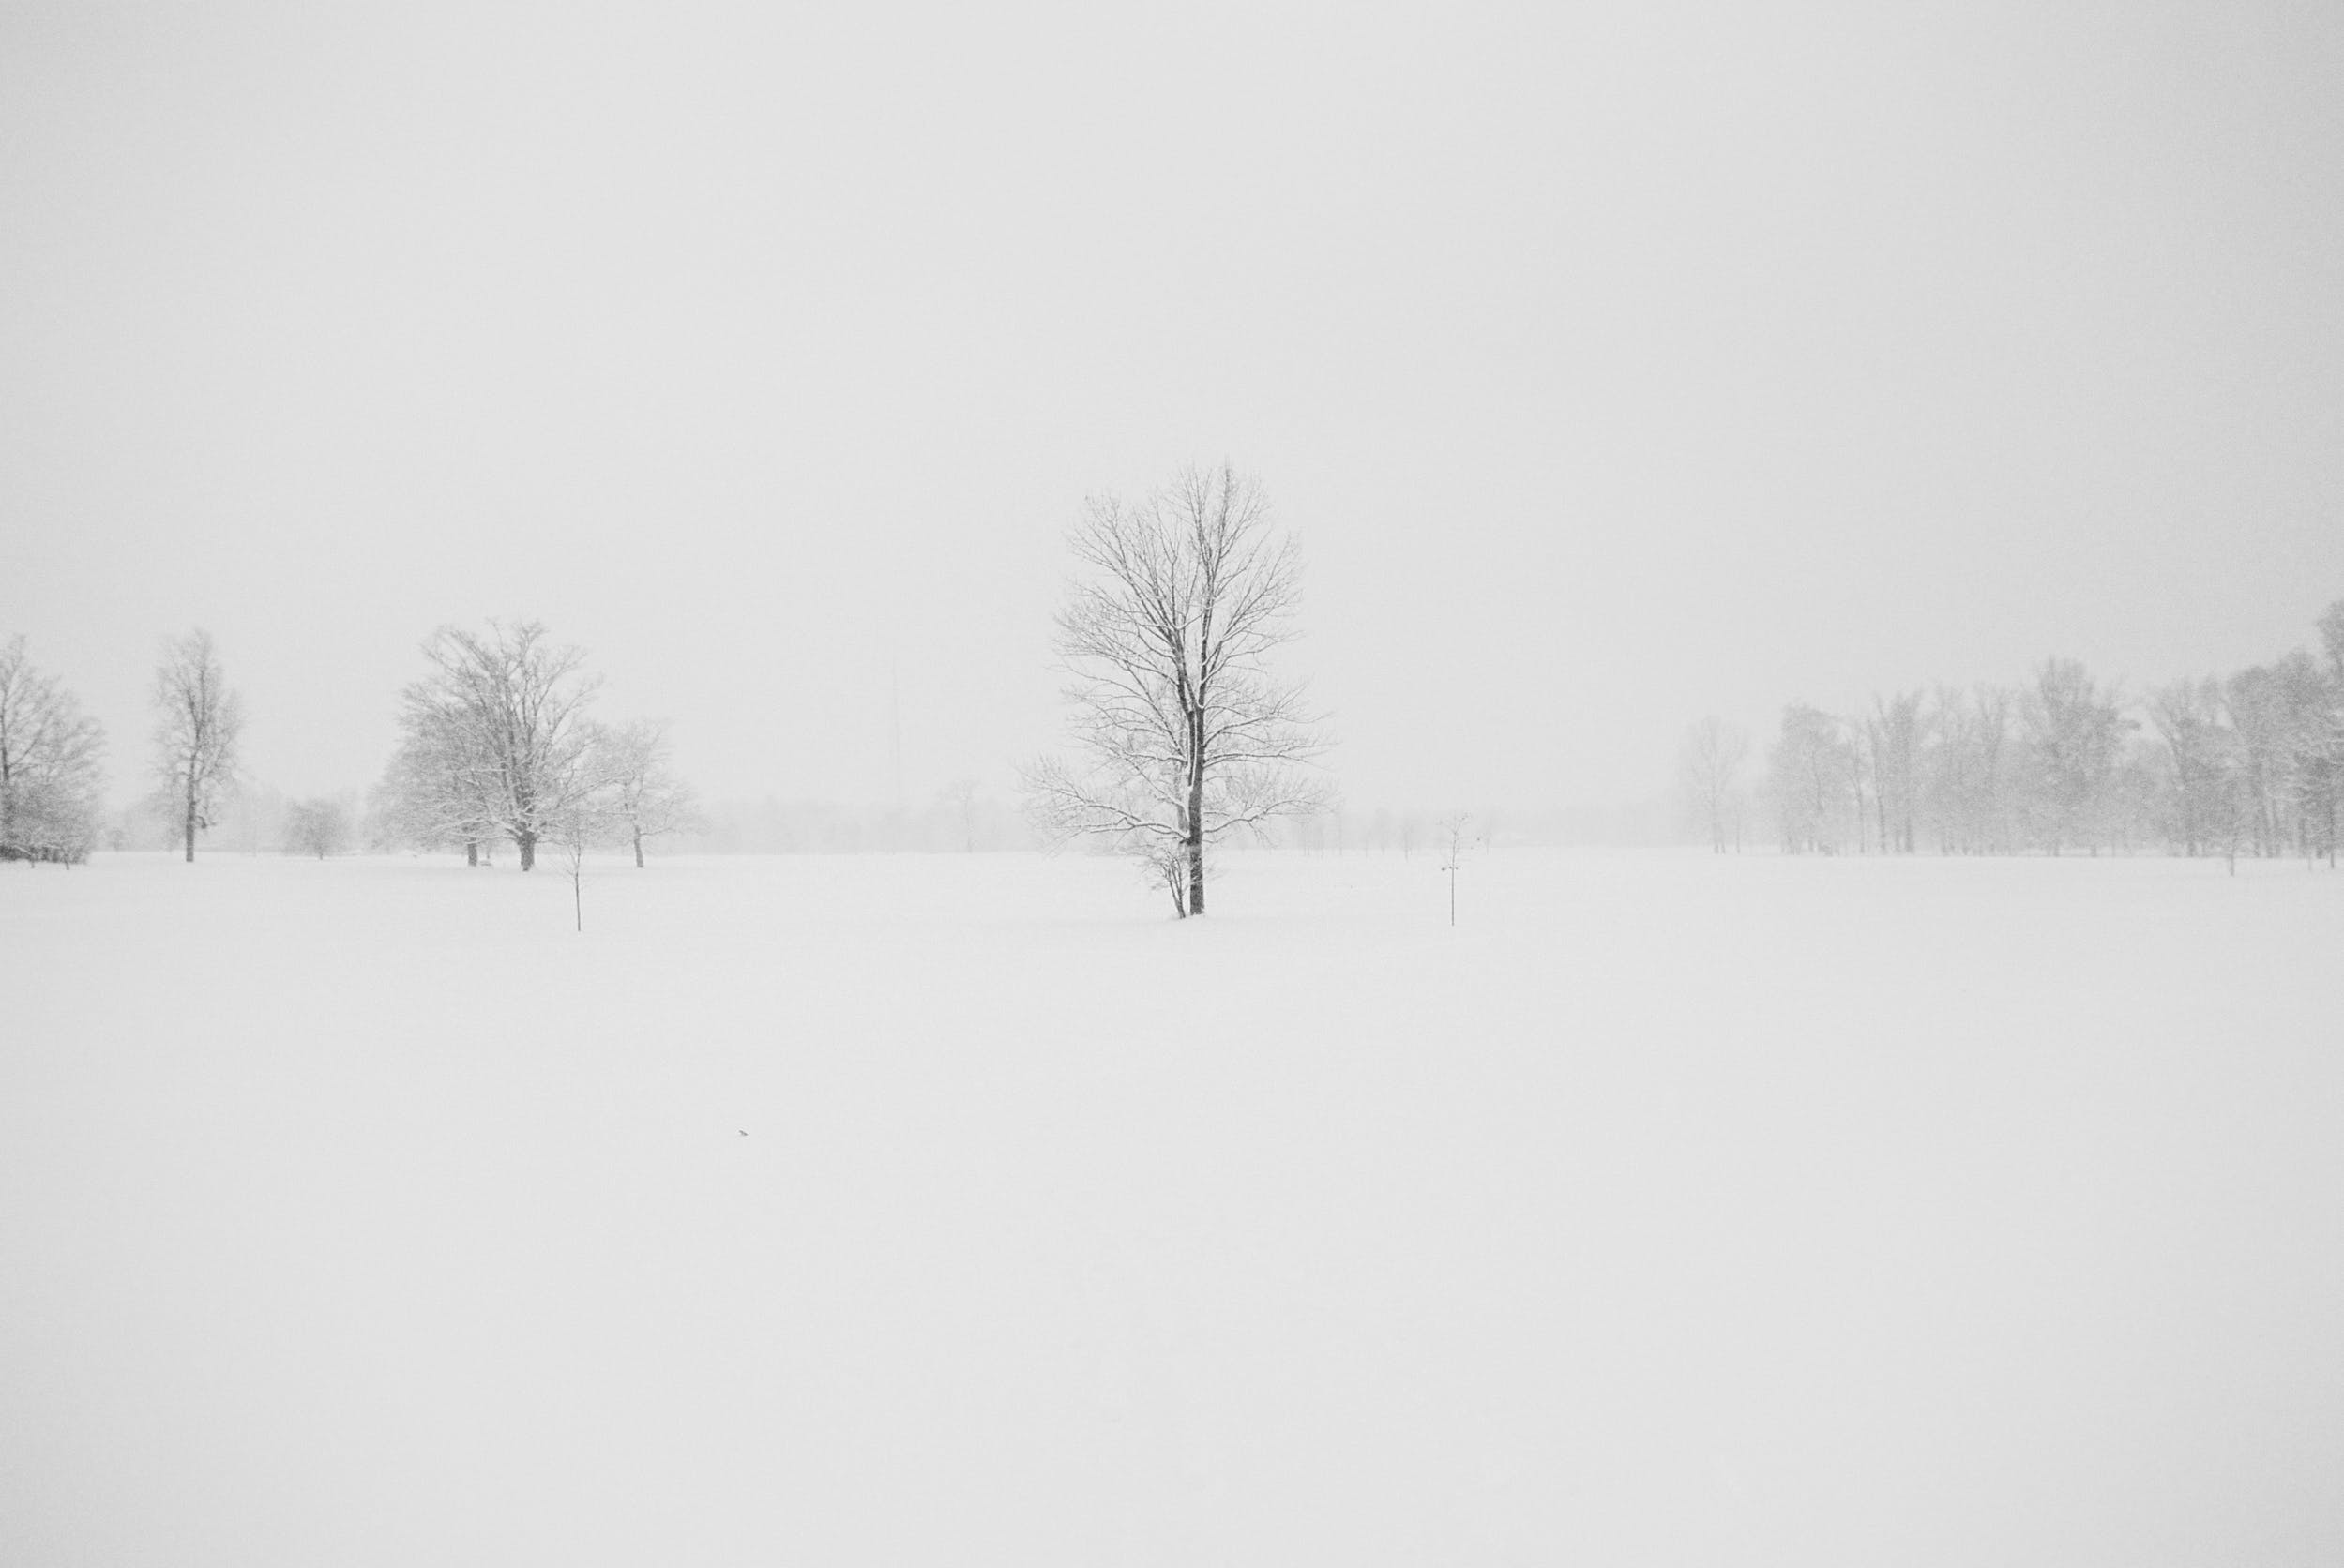 Photography of Leafless Tree Surrounded by Snow